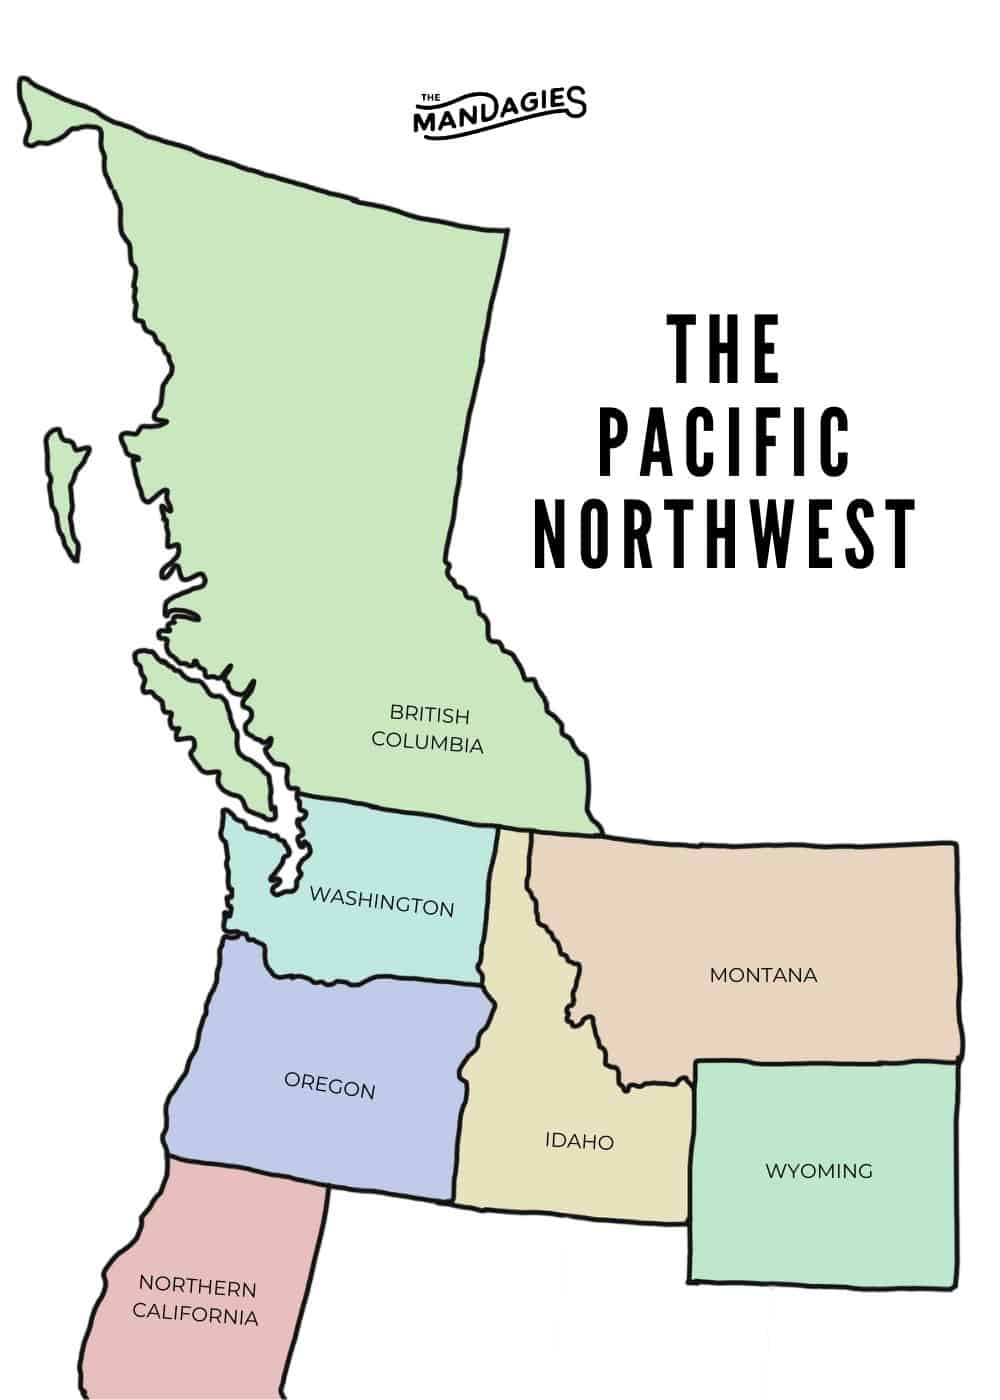 Map of The Pacific Northwest